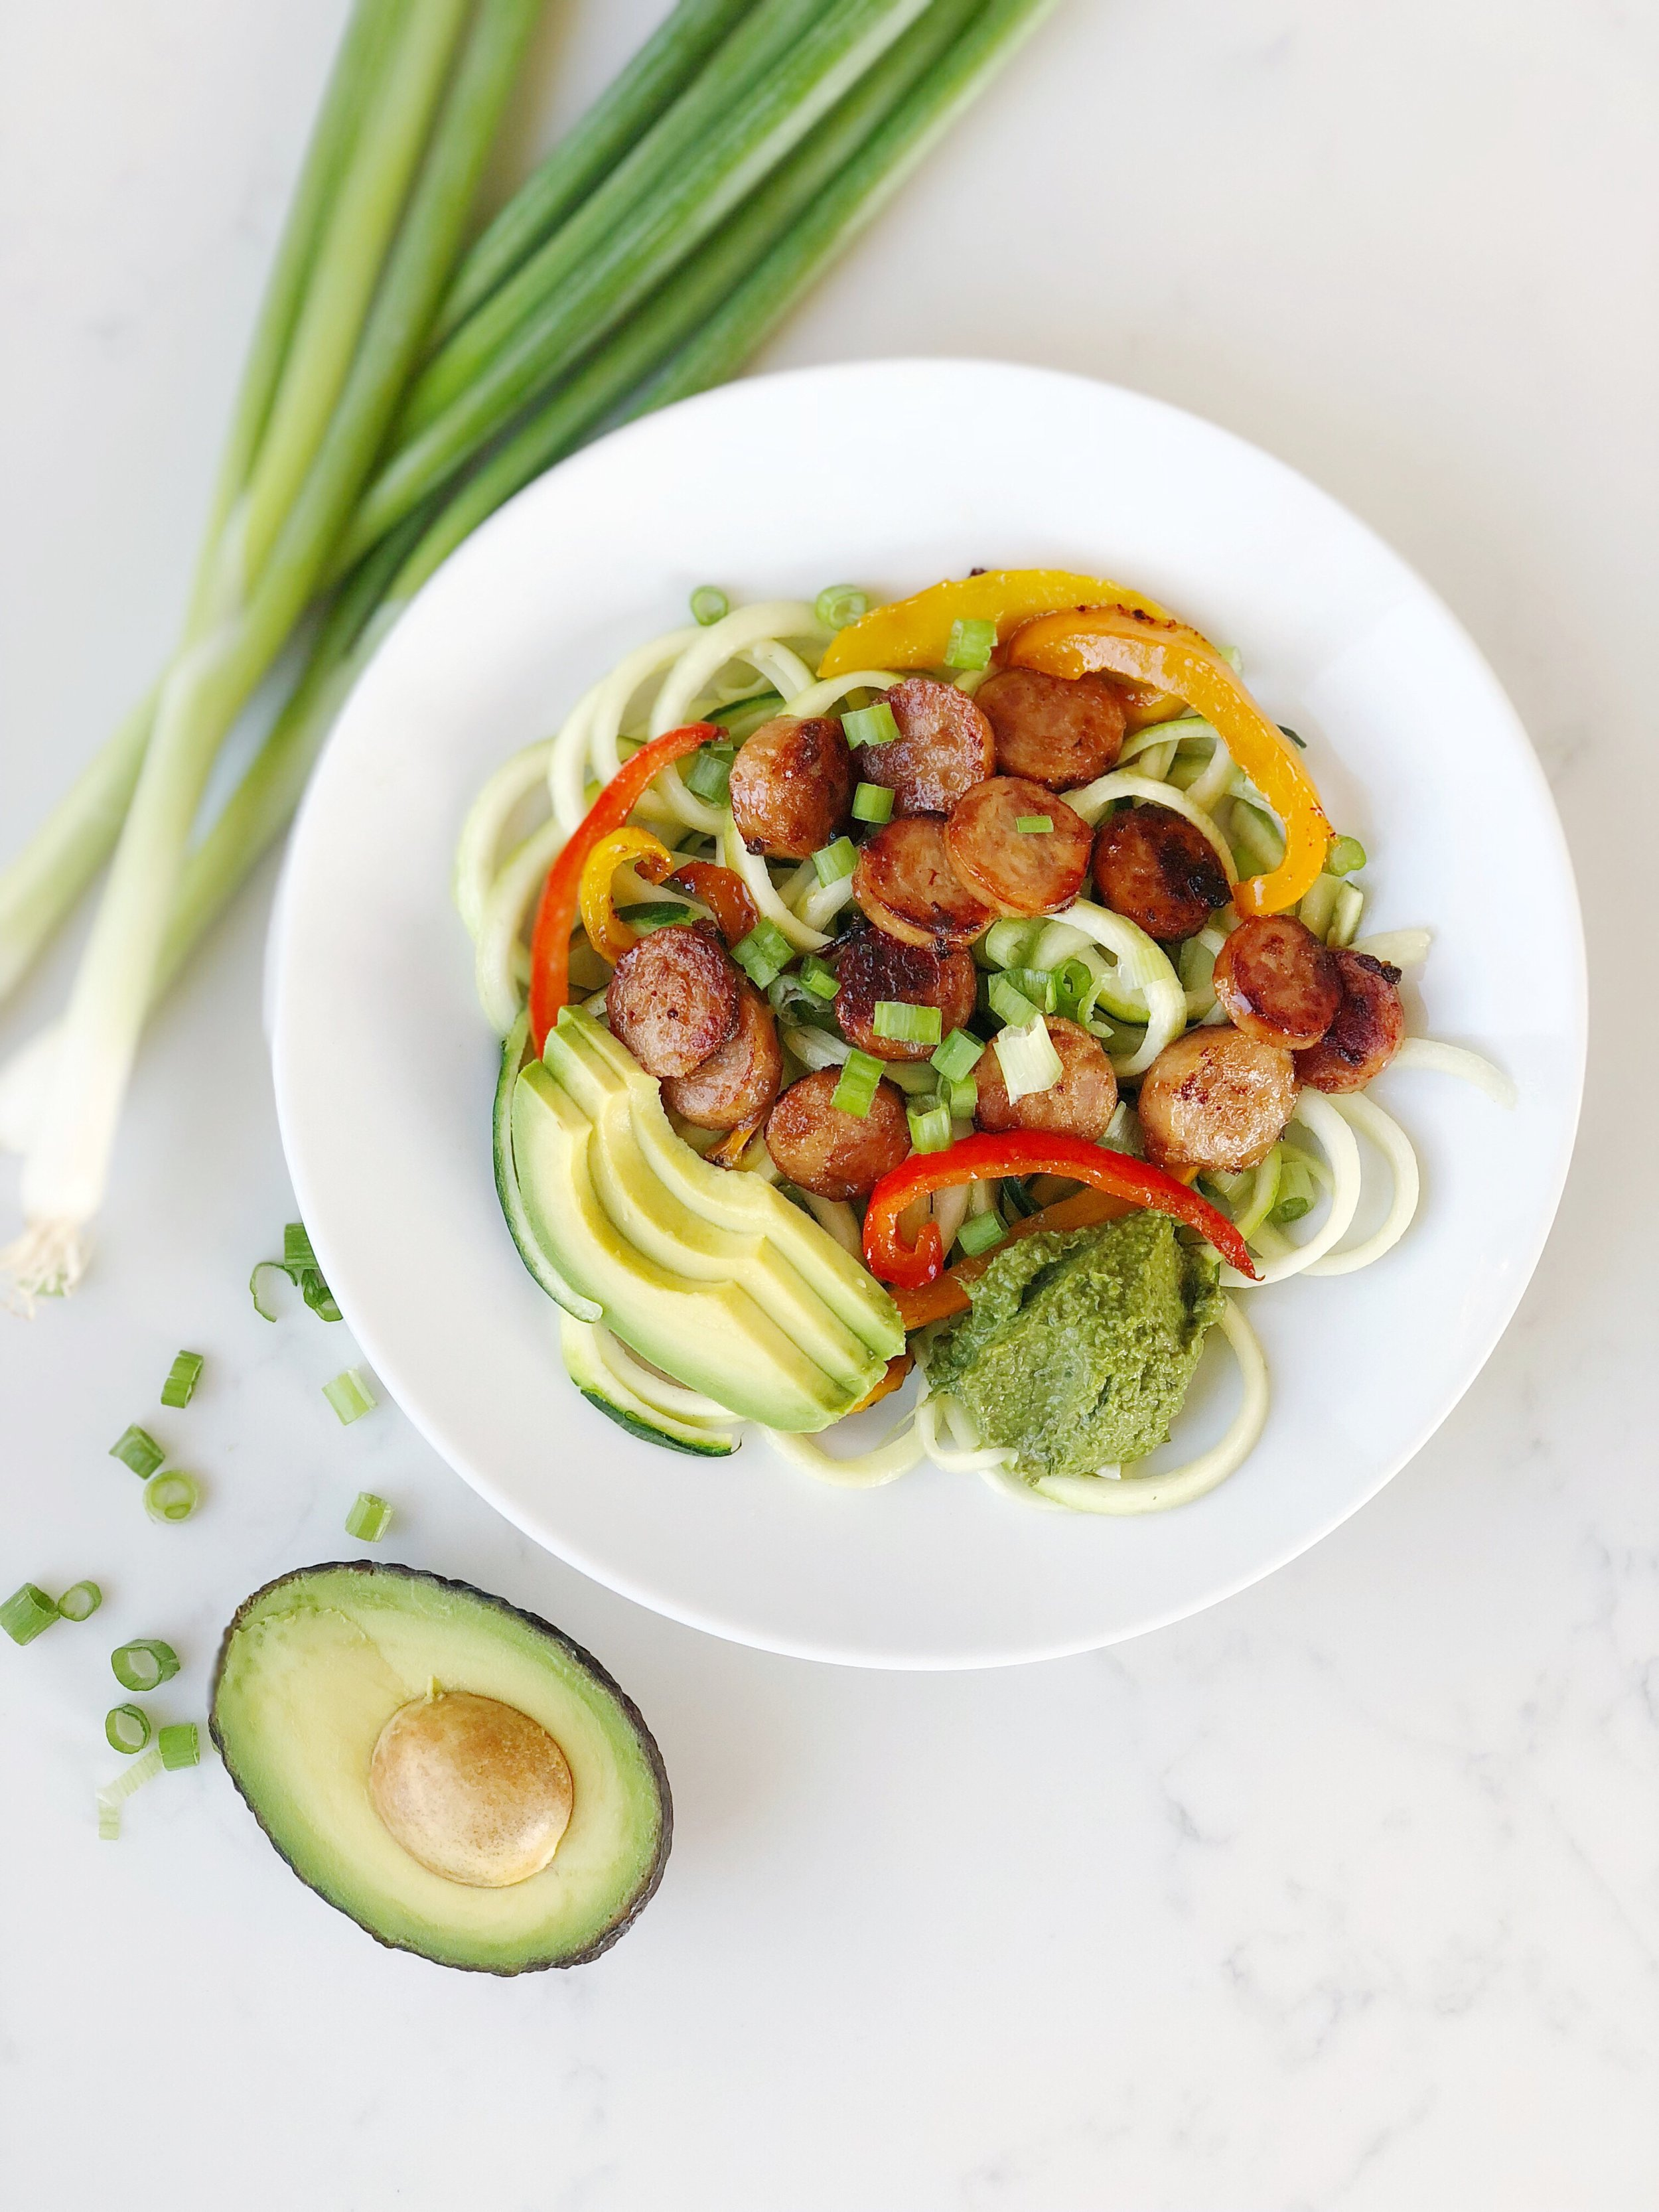 Pesto zucchini noodles with sausage and peppers.JPG